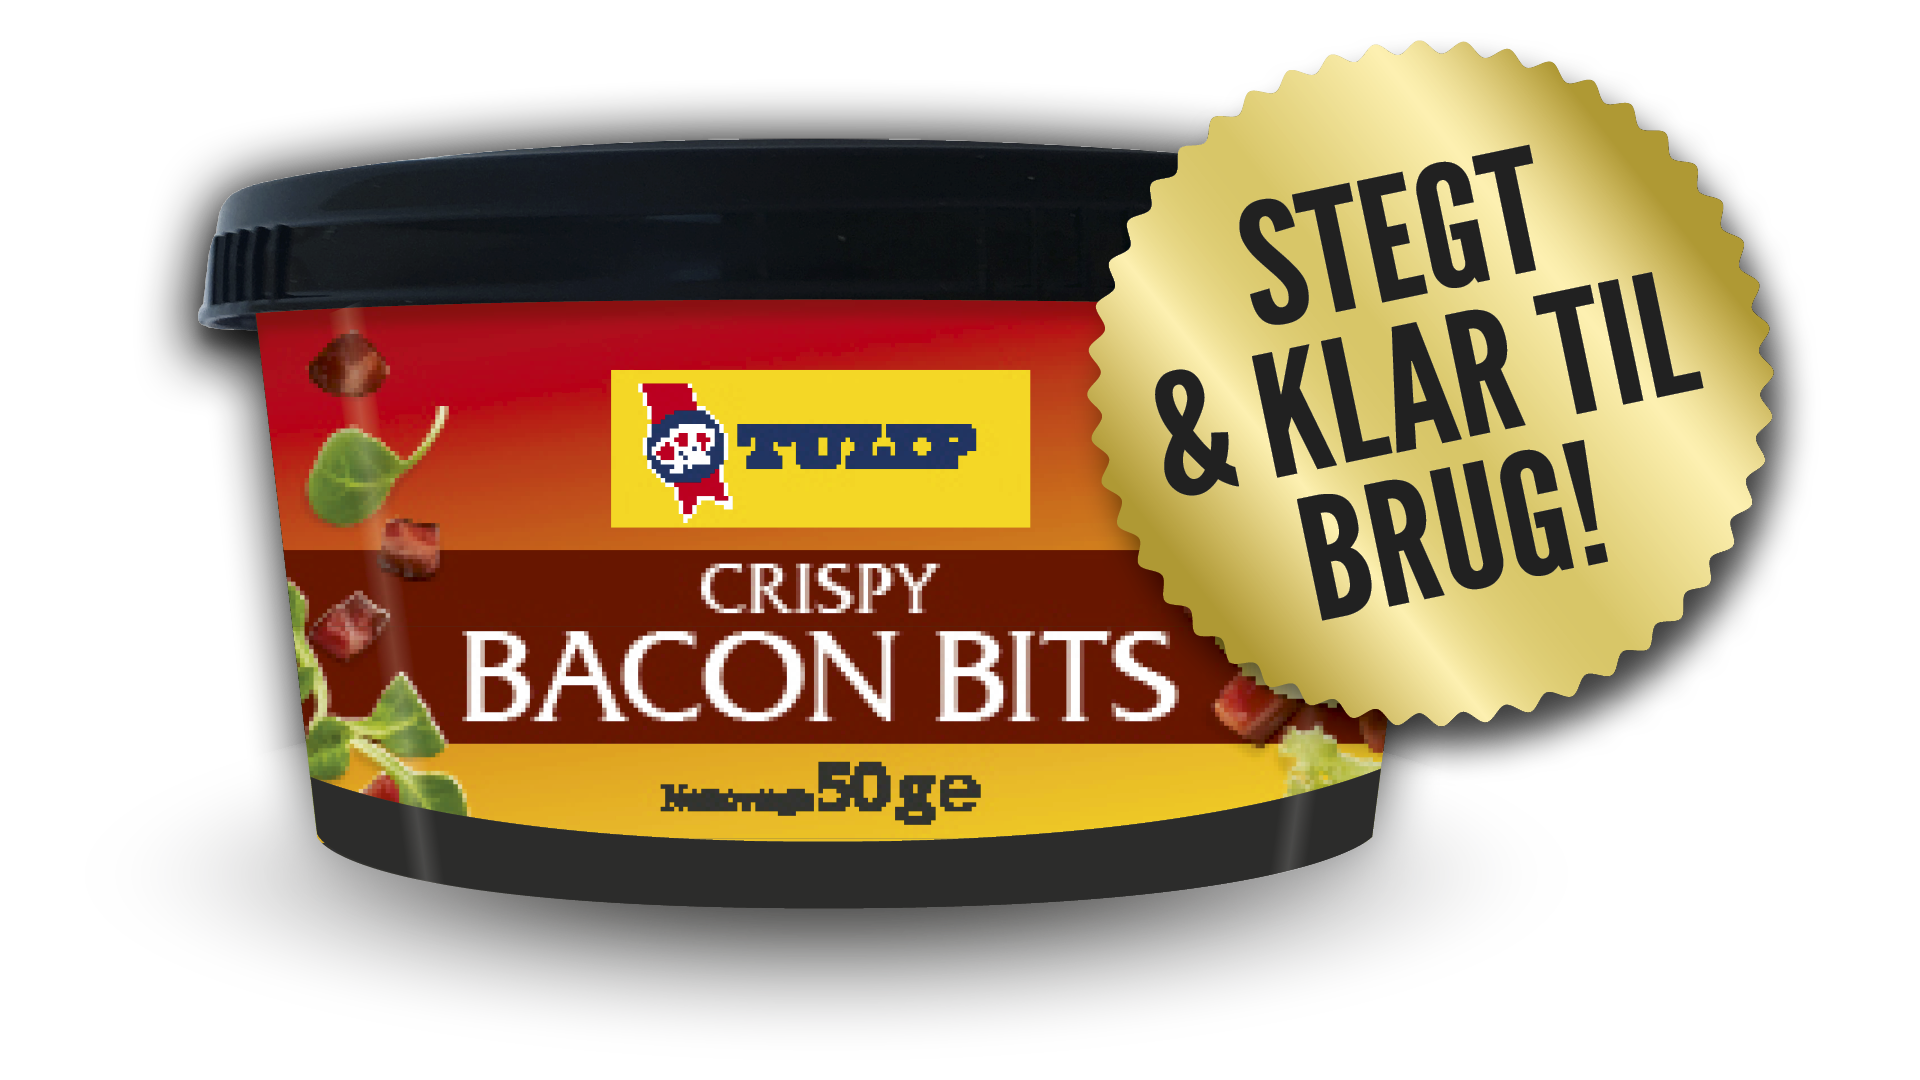 13205_Tulip Crispy Bacon Bits_website_bacon cup_16_9format.png